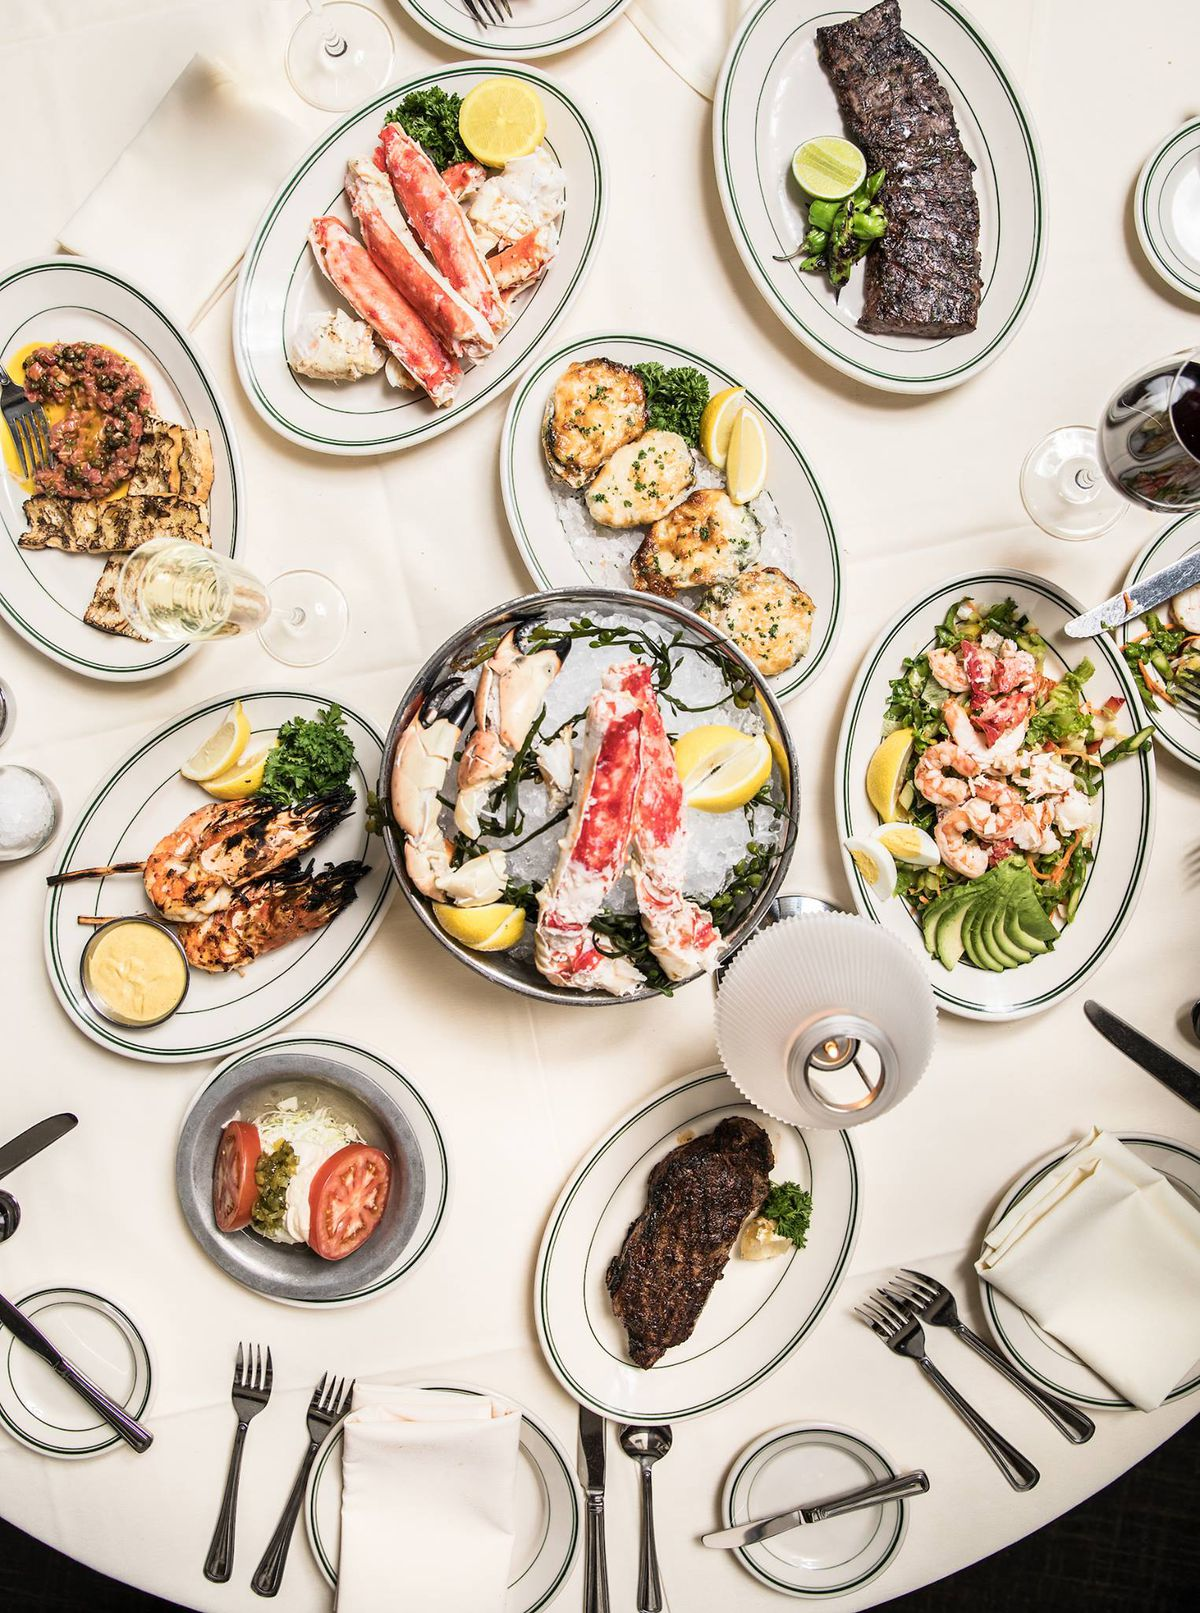 An array of dishes from Joe's Seafood, Prime Steak & Stone Crab